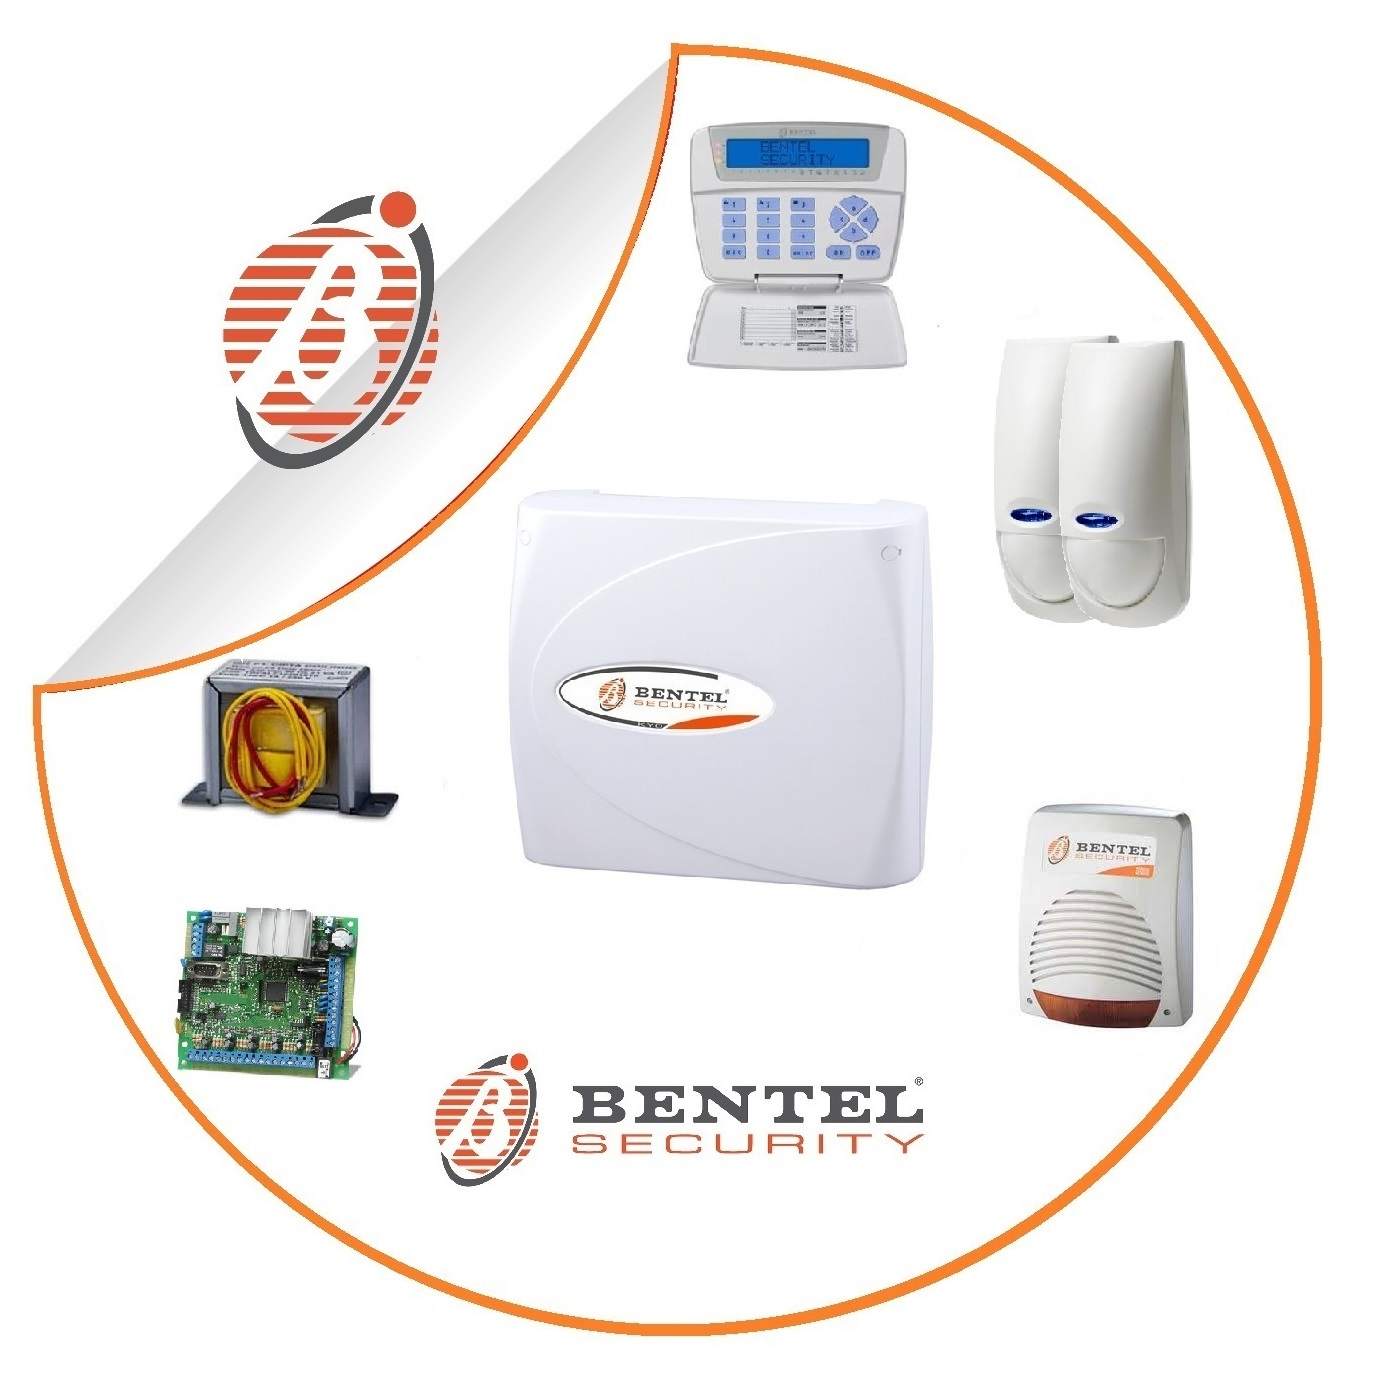 kit centrale kyo8 bentel security pnp antifurti